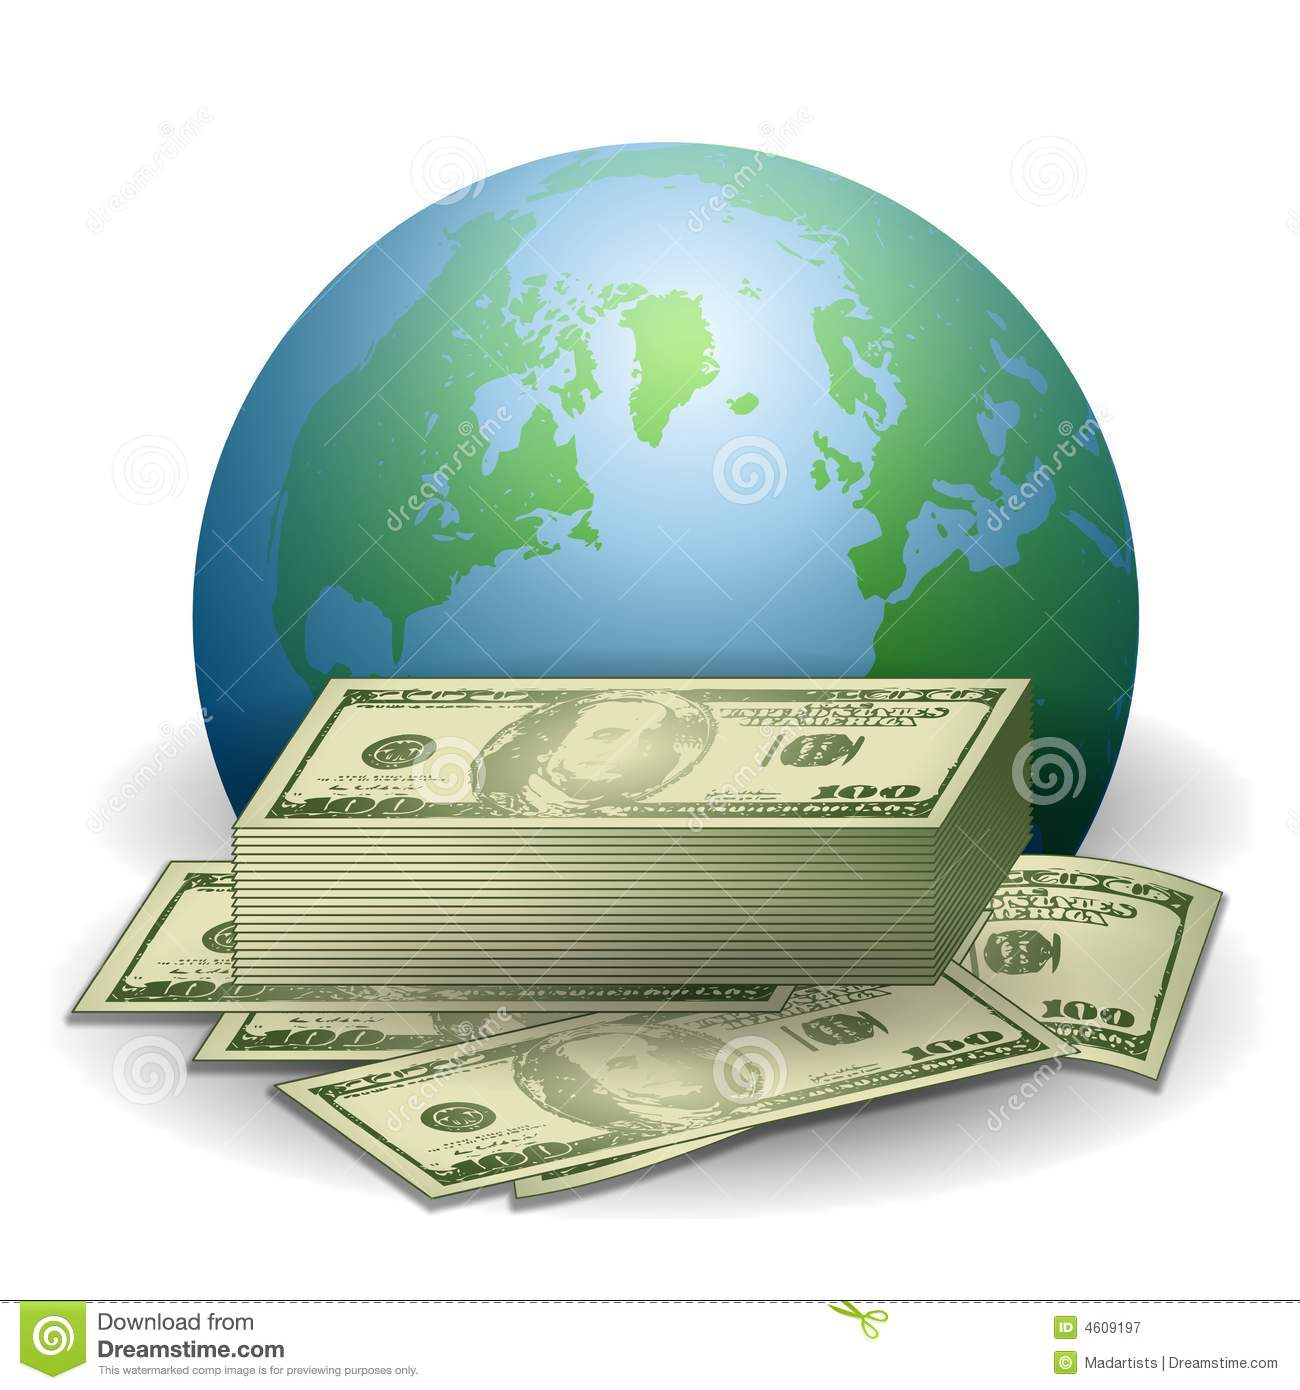 Rate clipart global economy #12